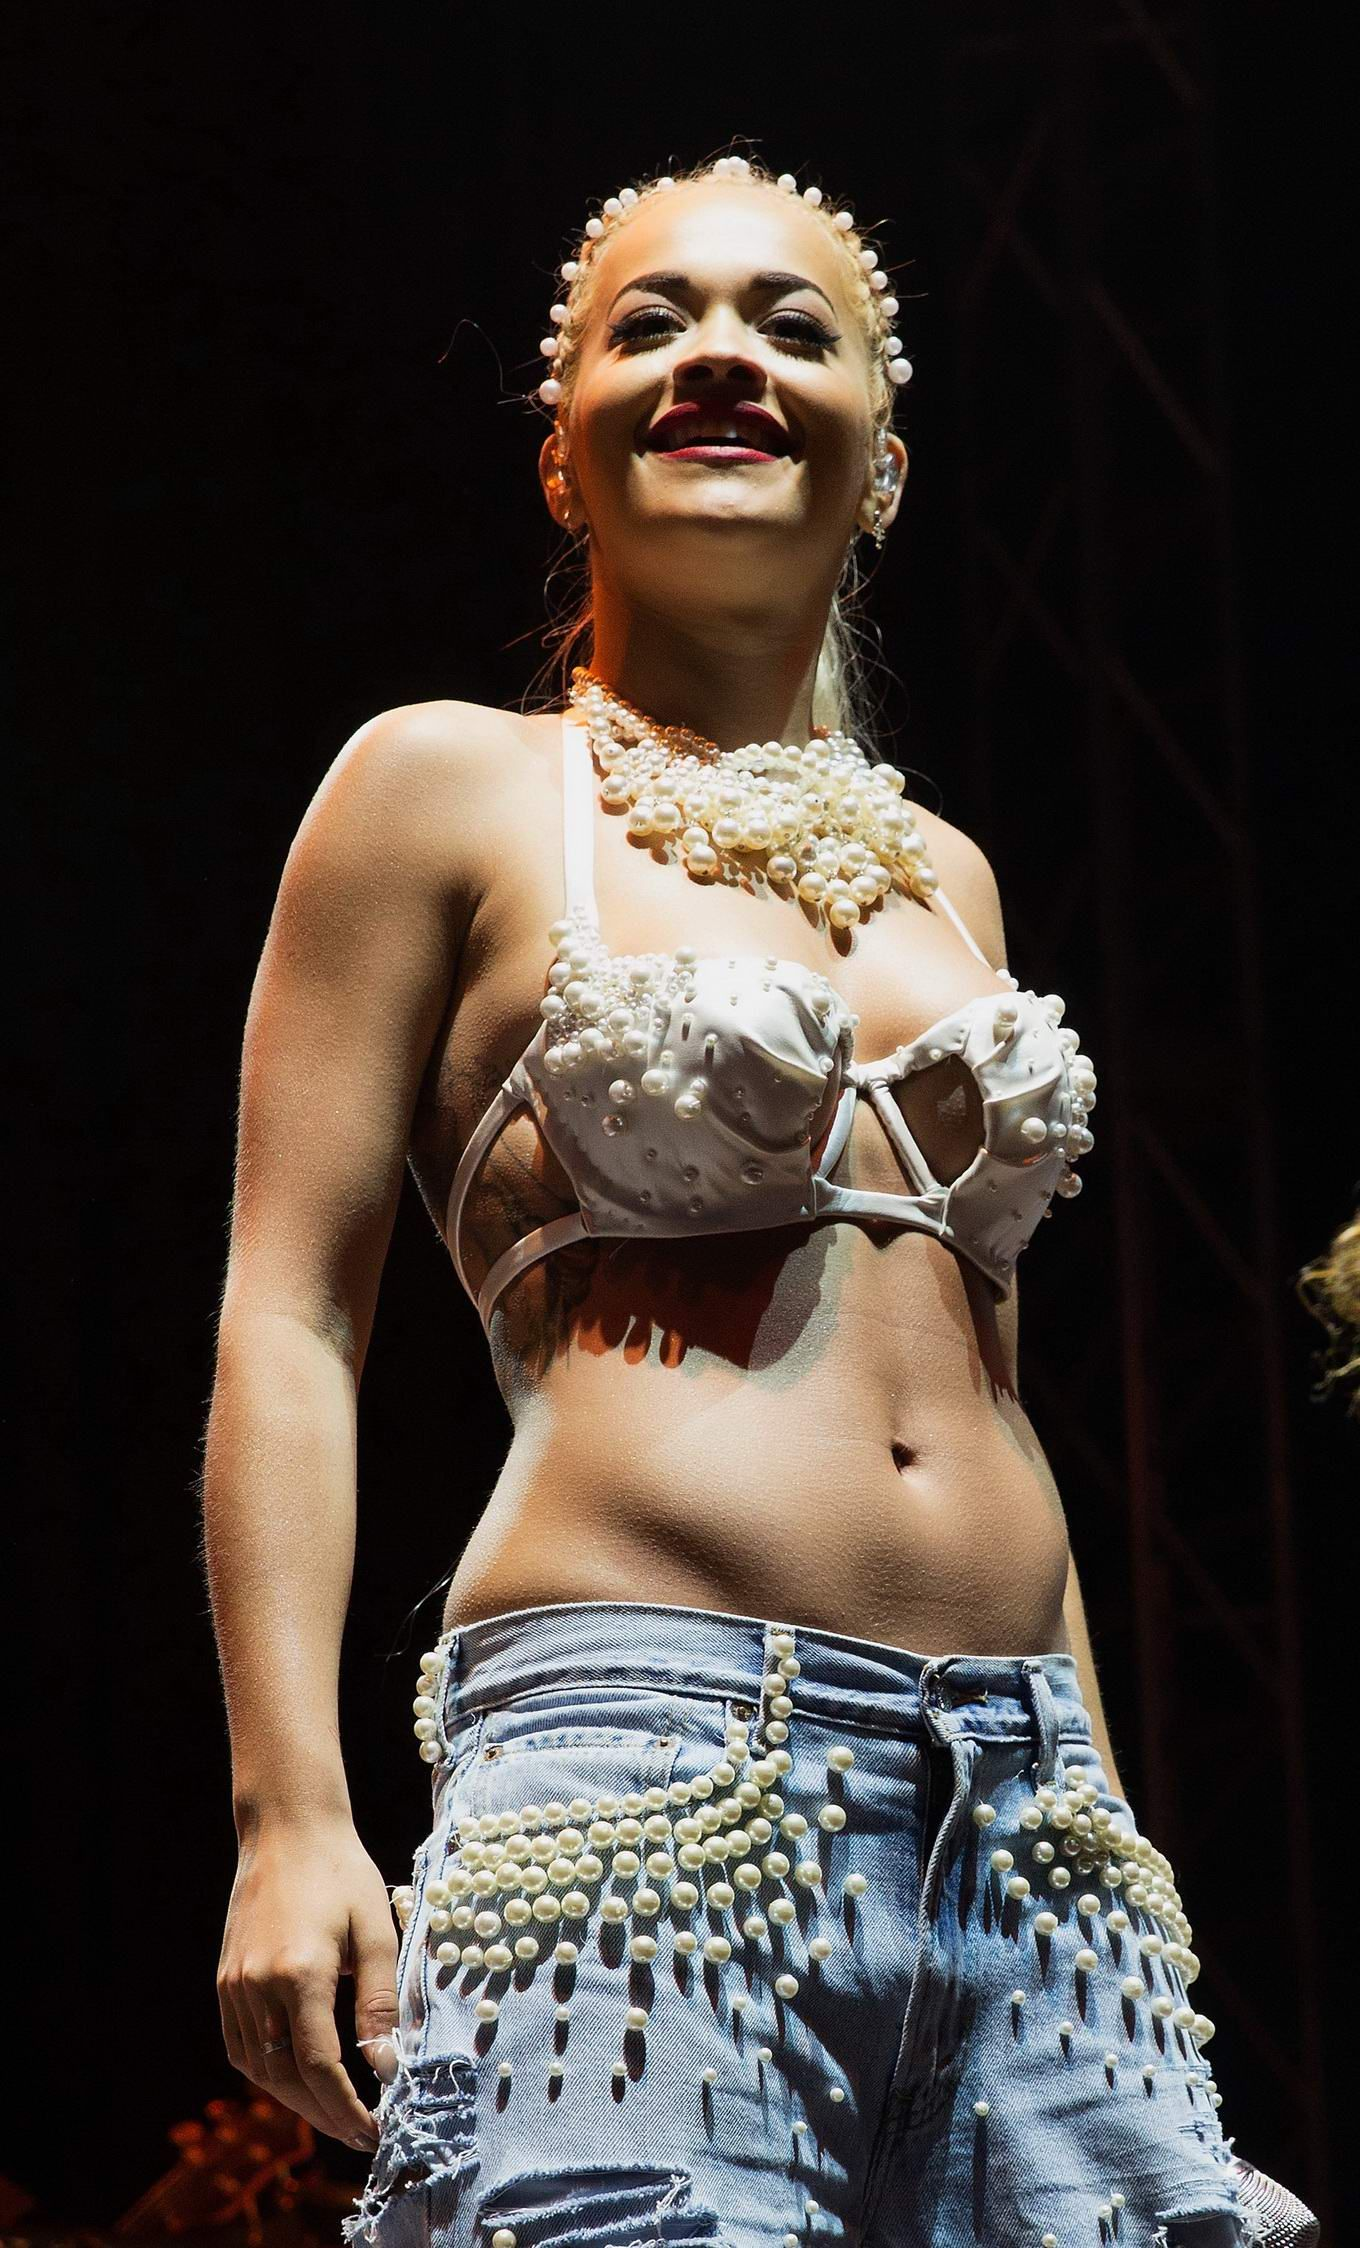 Discussion on this topic: Mel gibson can drink again sort of woo, rita-ora-topless/